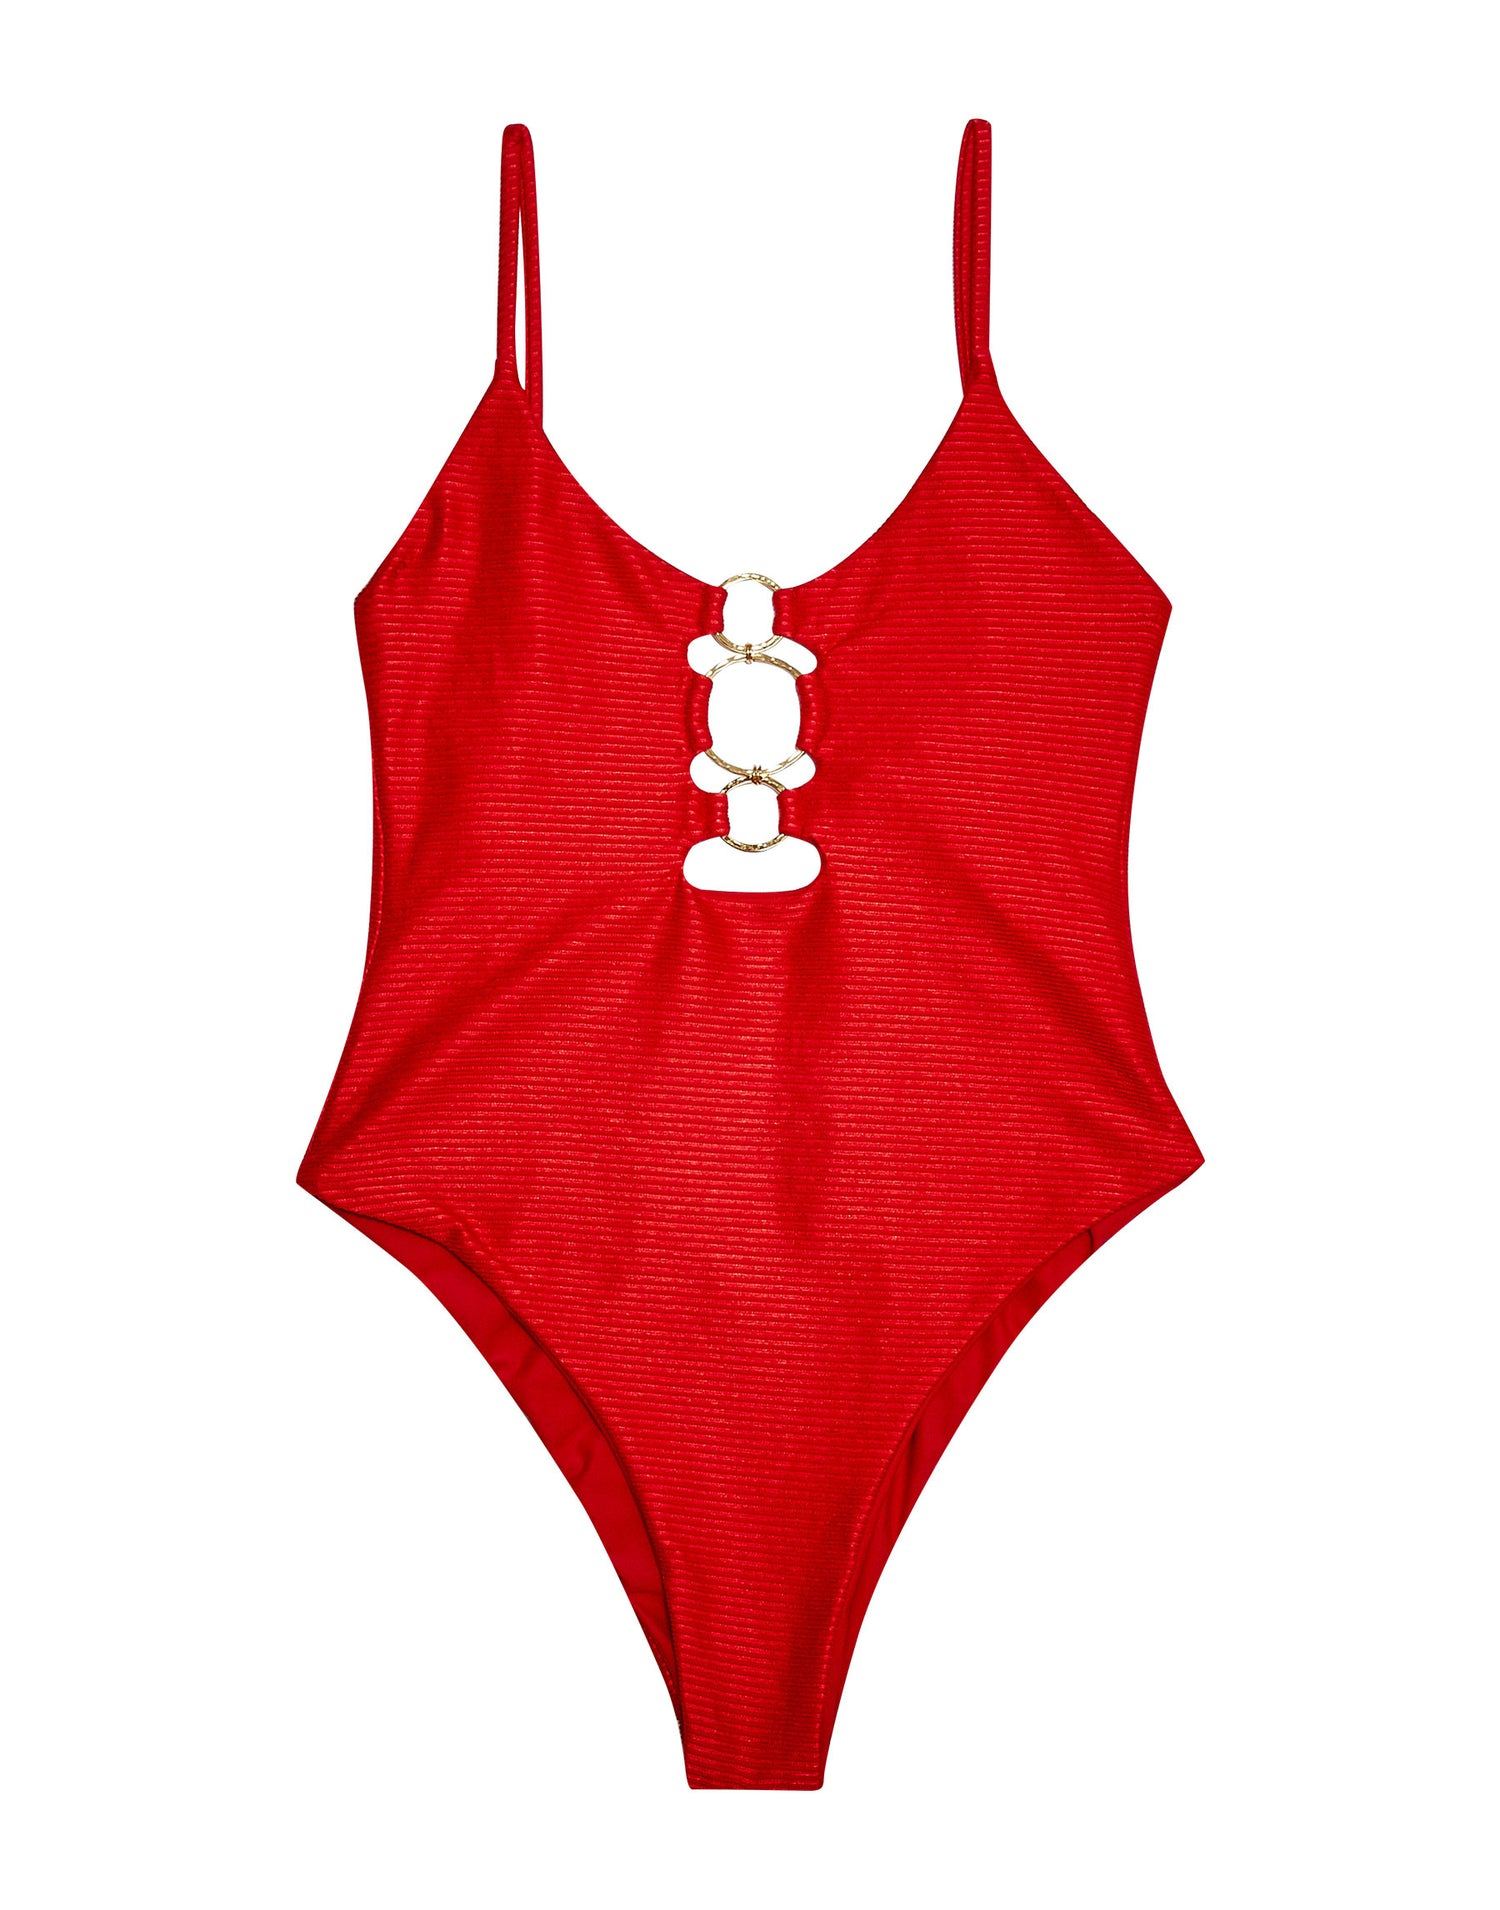 Red Rib Katrina One Piece Swimsuit - Product View